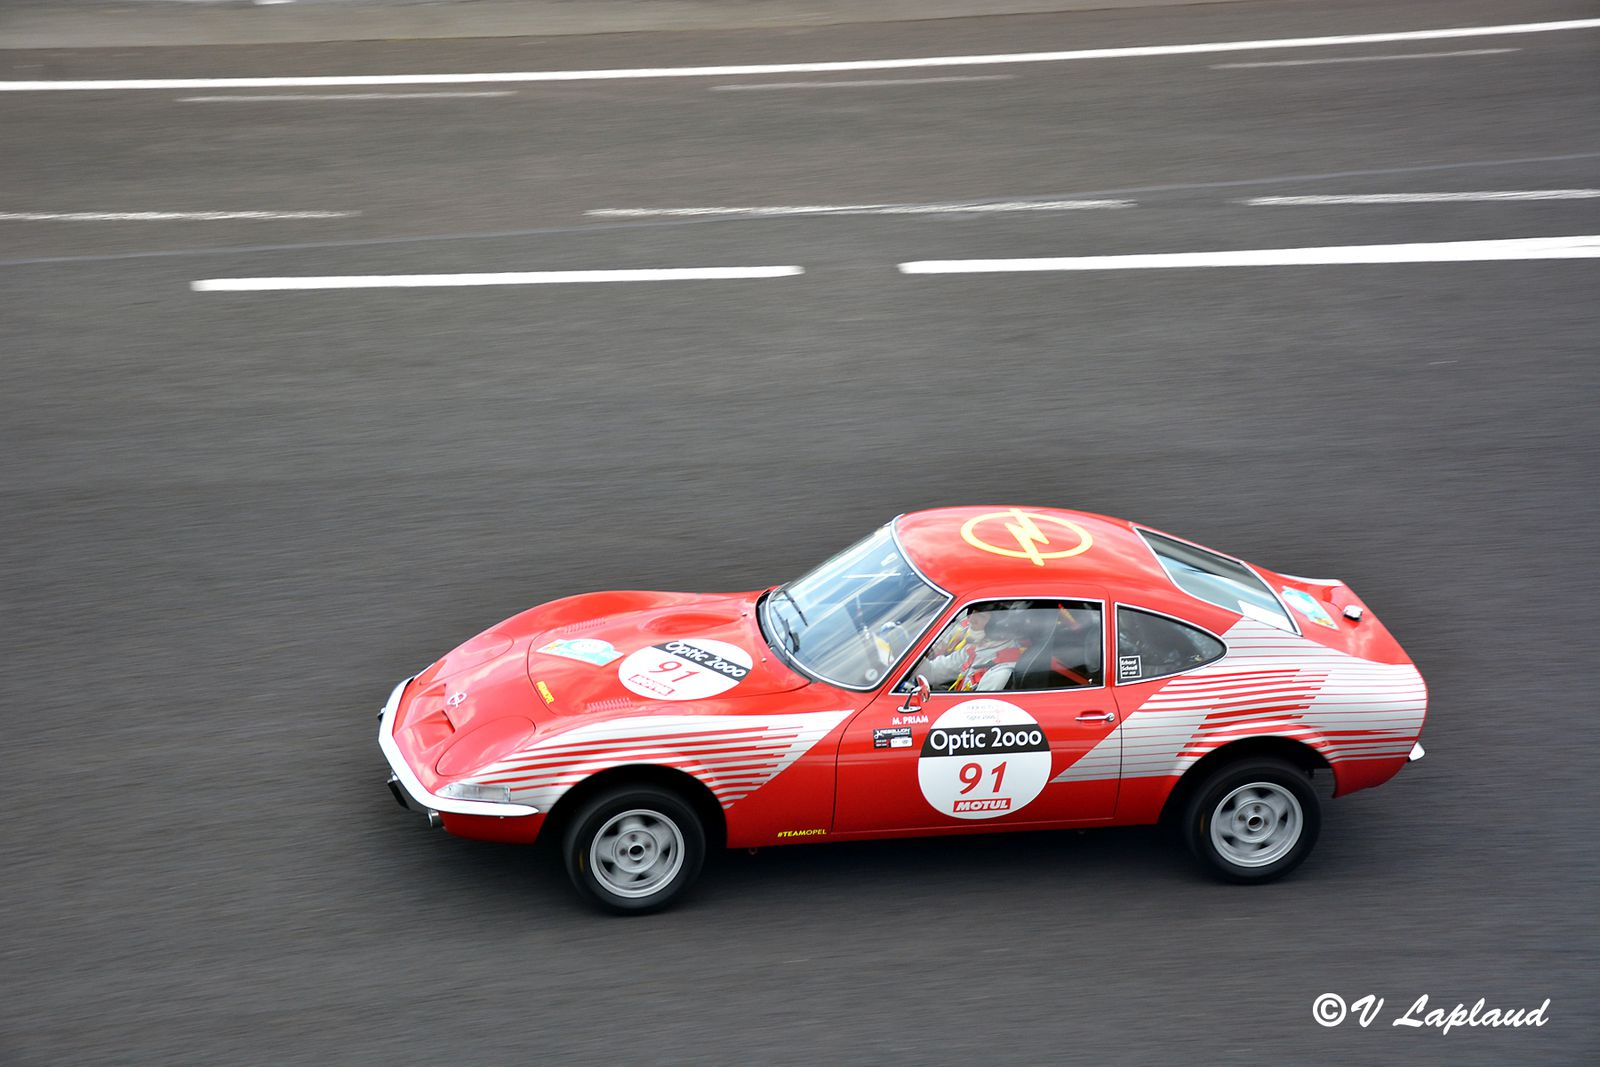 Opel 1900 GT 1972, Melina Priam et Anne-Chantal Pauwels, Charade, Tour Auto 2020.